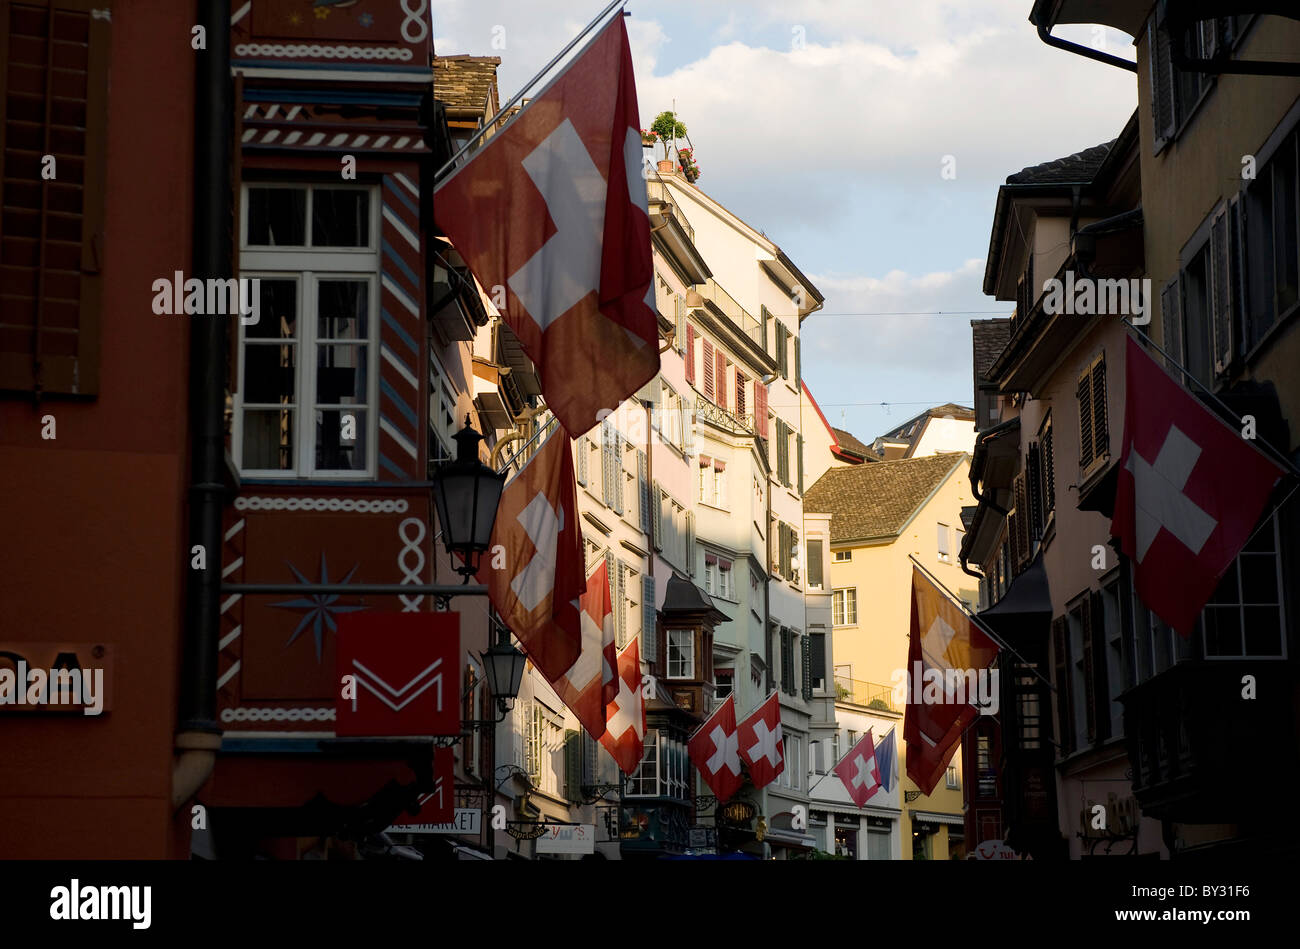 Swiss flags in the Augustinergasse, Zurich, Switzerland - Stock Image